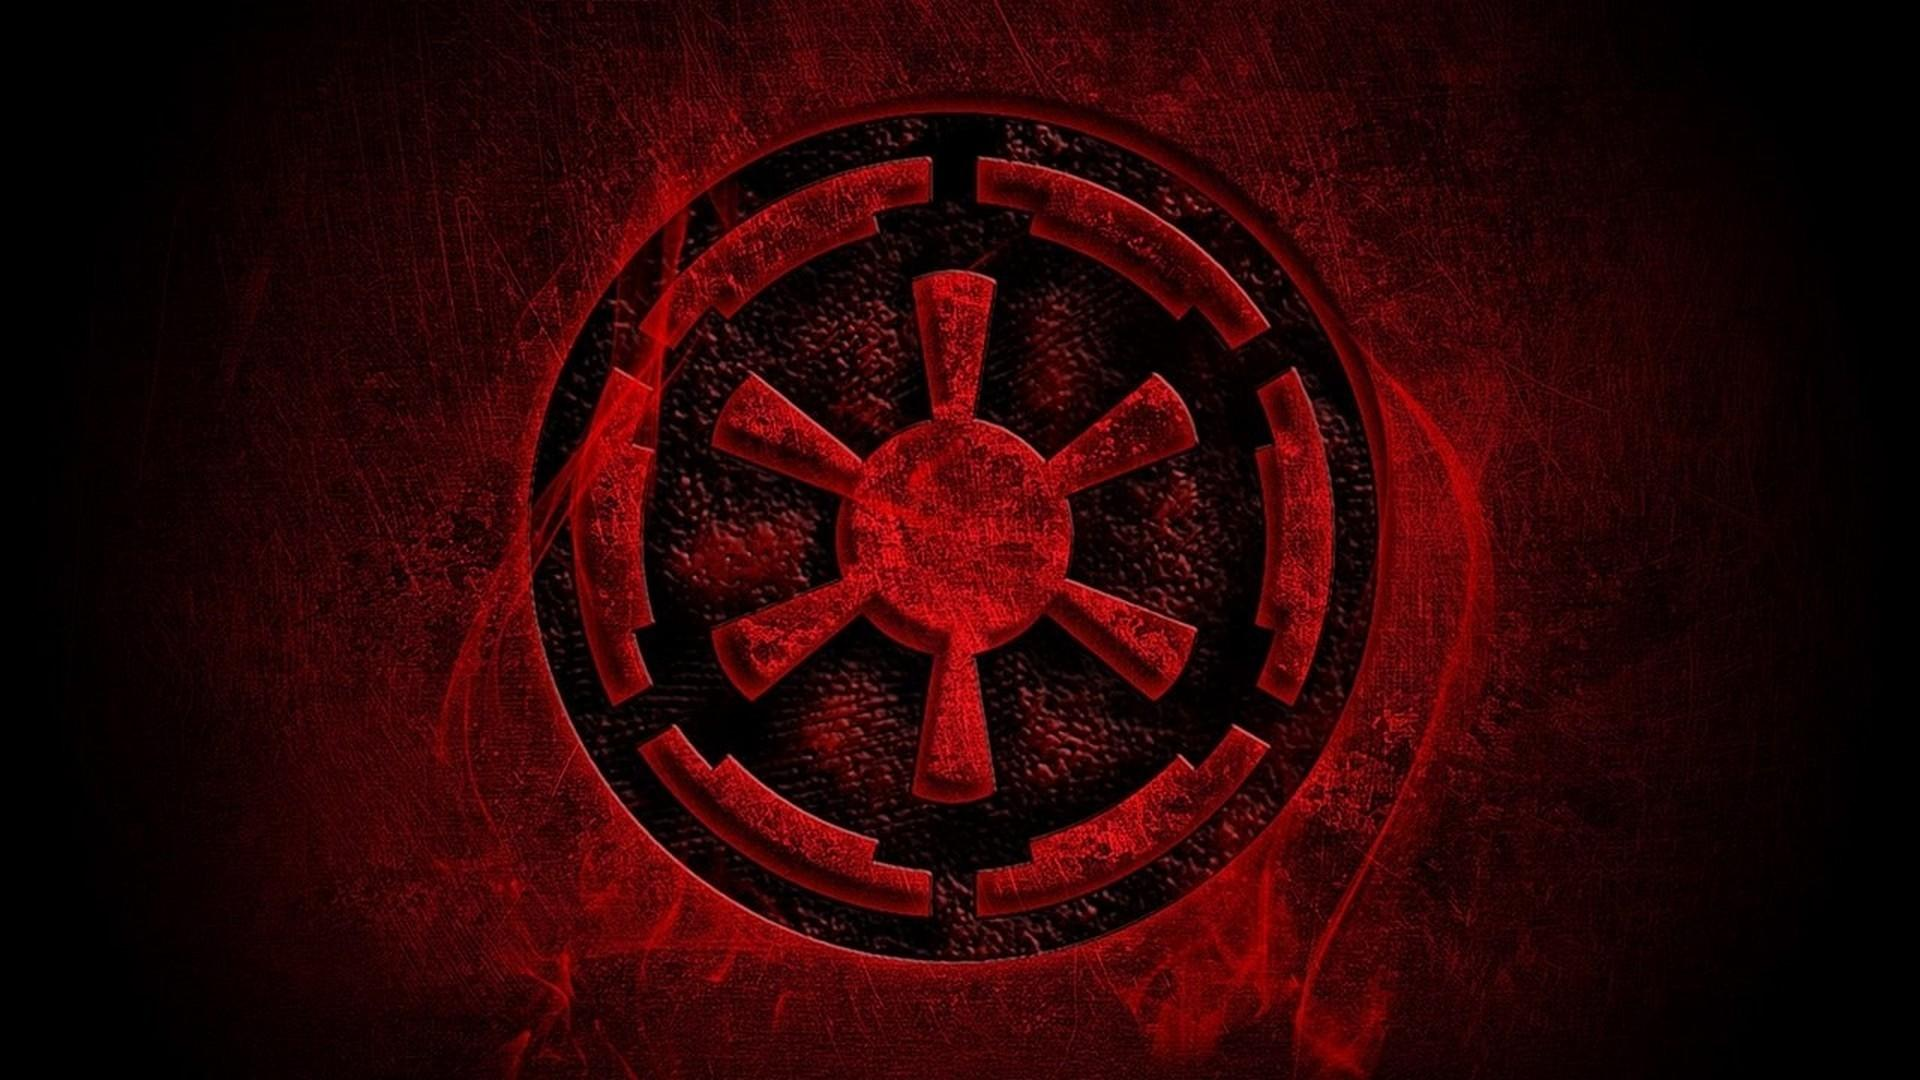 Star Wars Imperial Logo Wallpapers - Wallpaper Cave